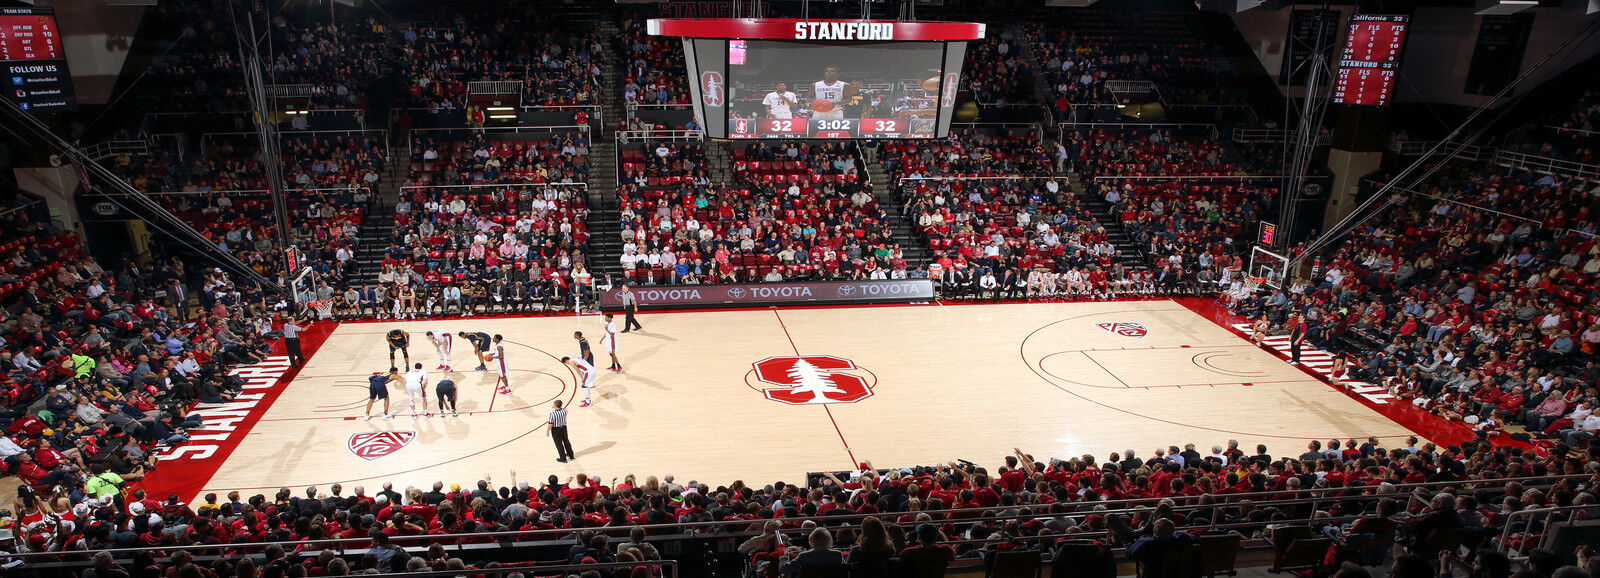 Arizona State Sun Devils at Stanford Cardinal Basketball